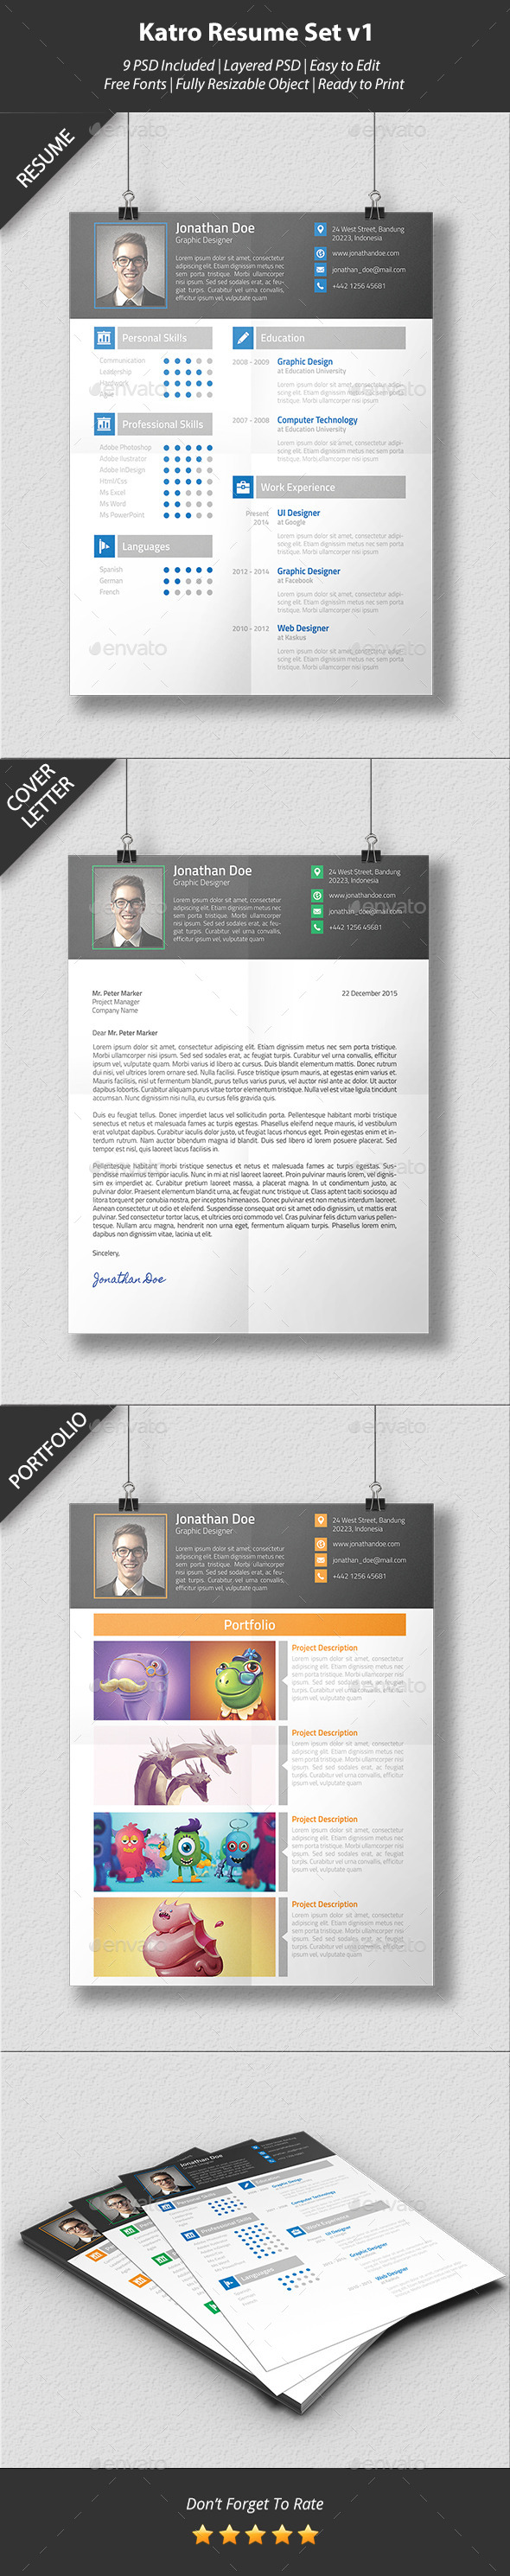 GraphicRiver Katro Resume Set v1 9849616